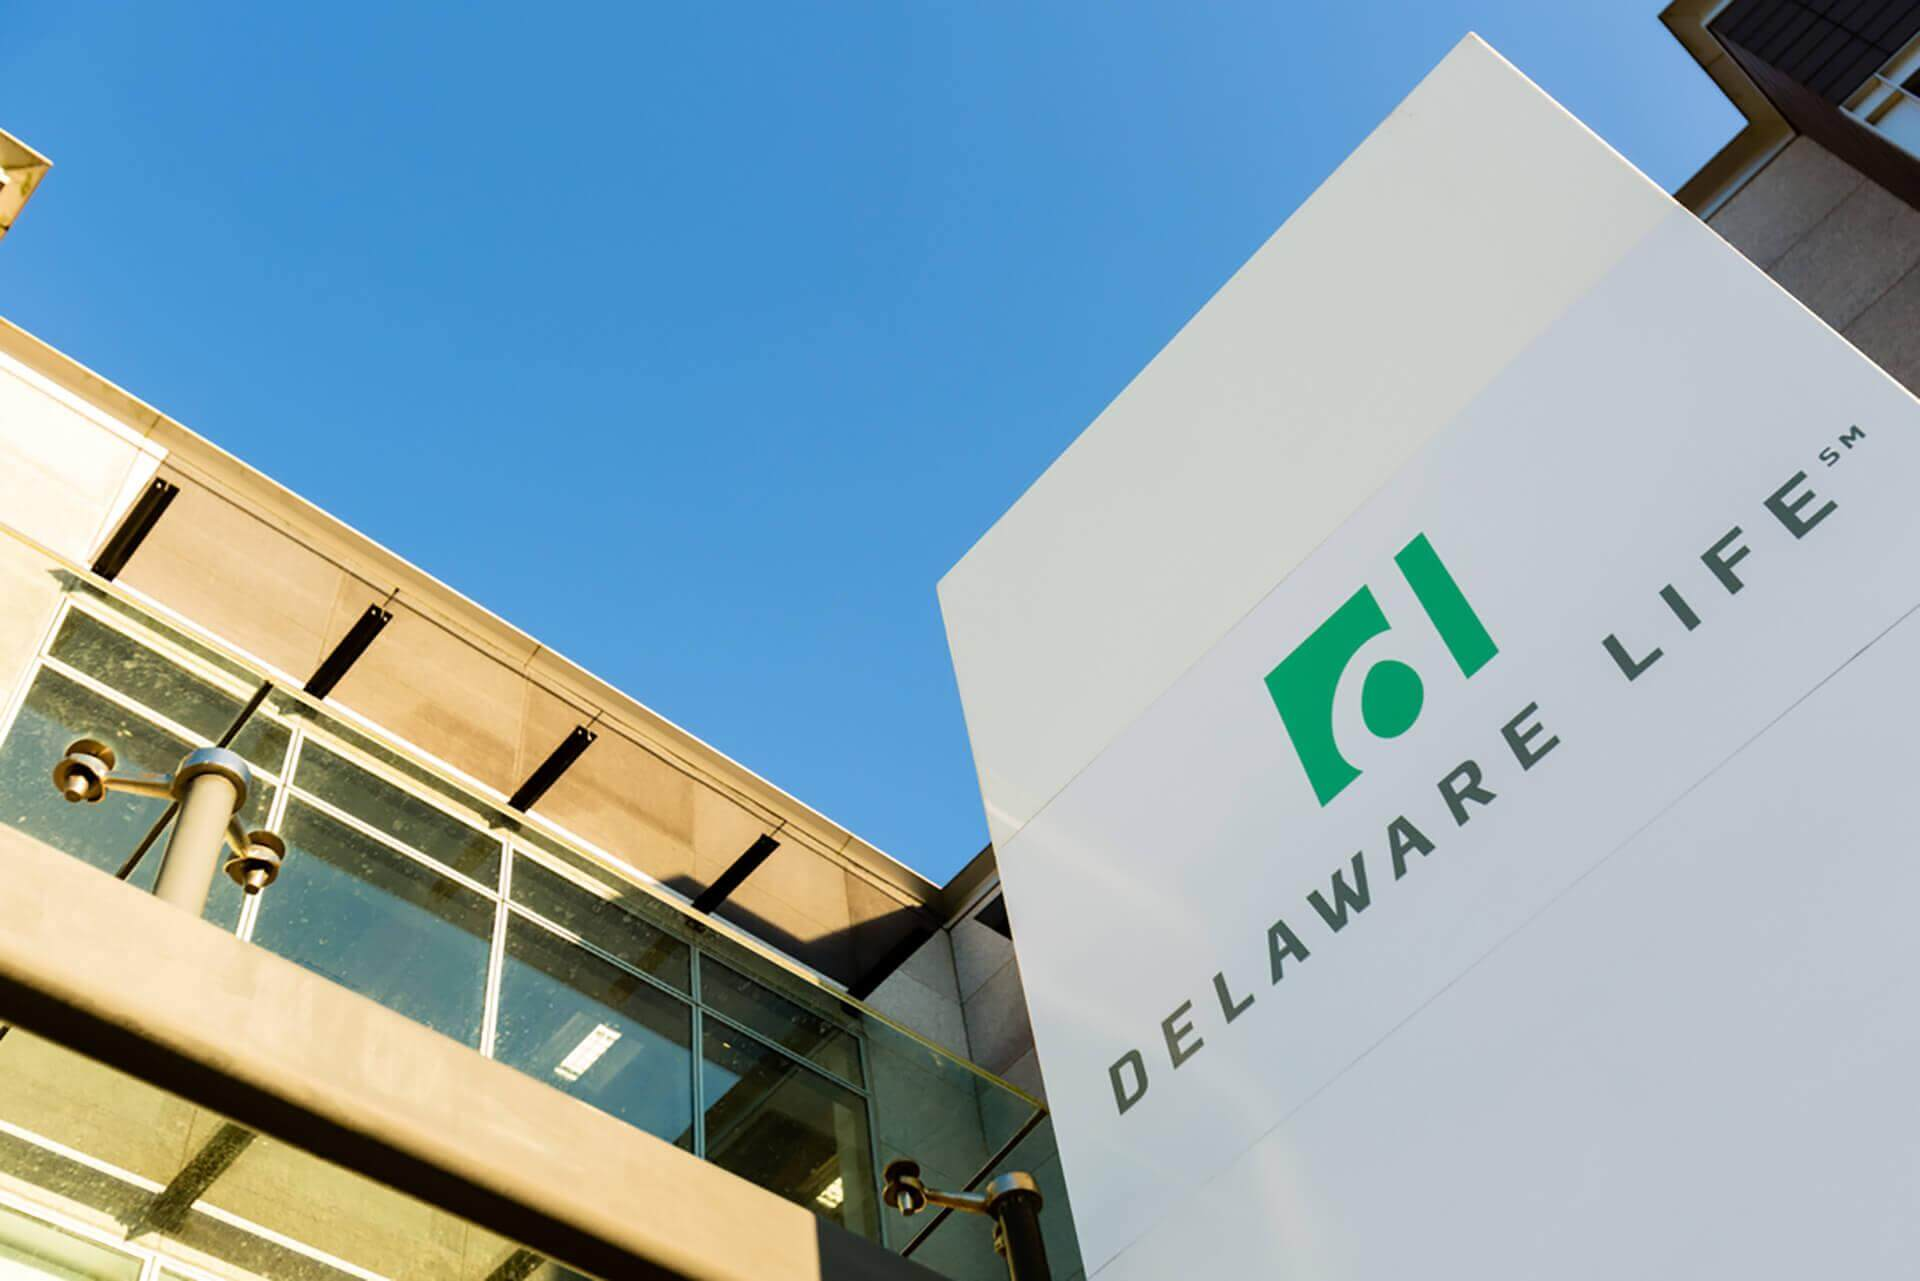 Delaware Life (SE2), IDA Waterford Business & Technology Park, Cork Road, Waterford, Ireland